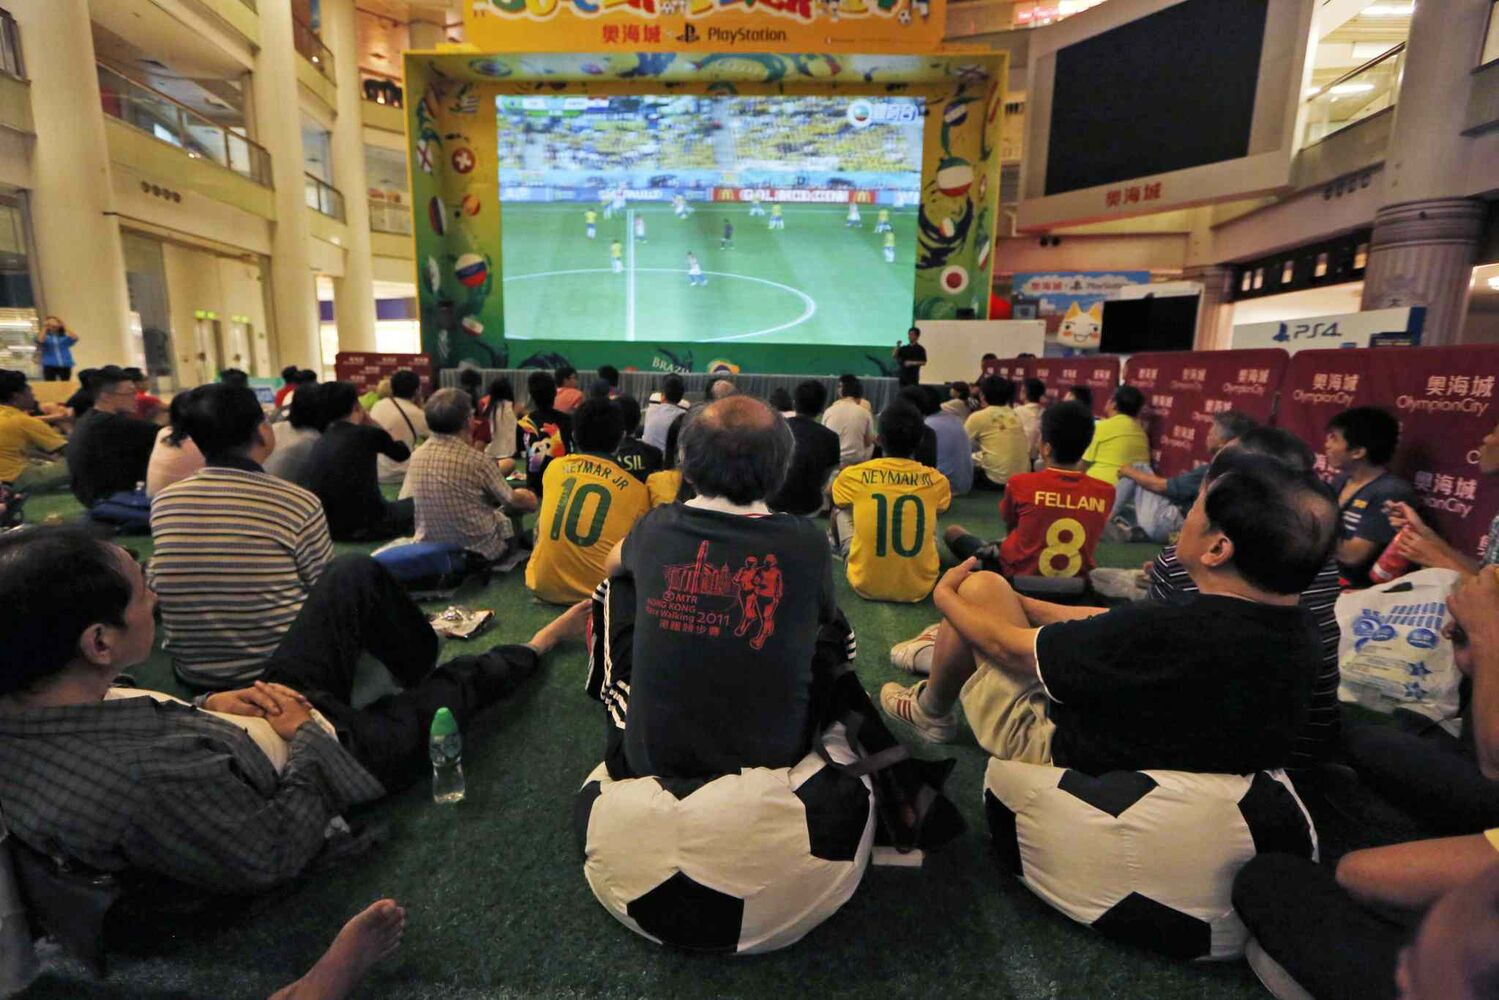 Soccer fans watch the opening match of the 2014 World Cup between Brazil and Croatia at a shopping mall in Hong Kong on Friday, June 13, 2014. (local time) (Kin Cheung / The Associated PRess)